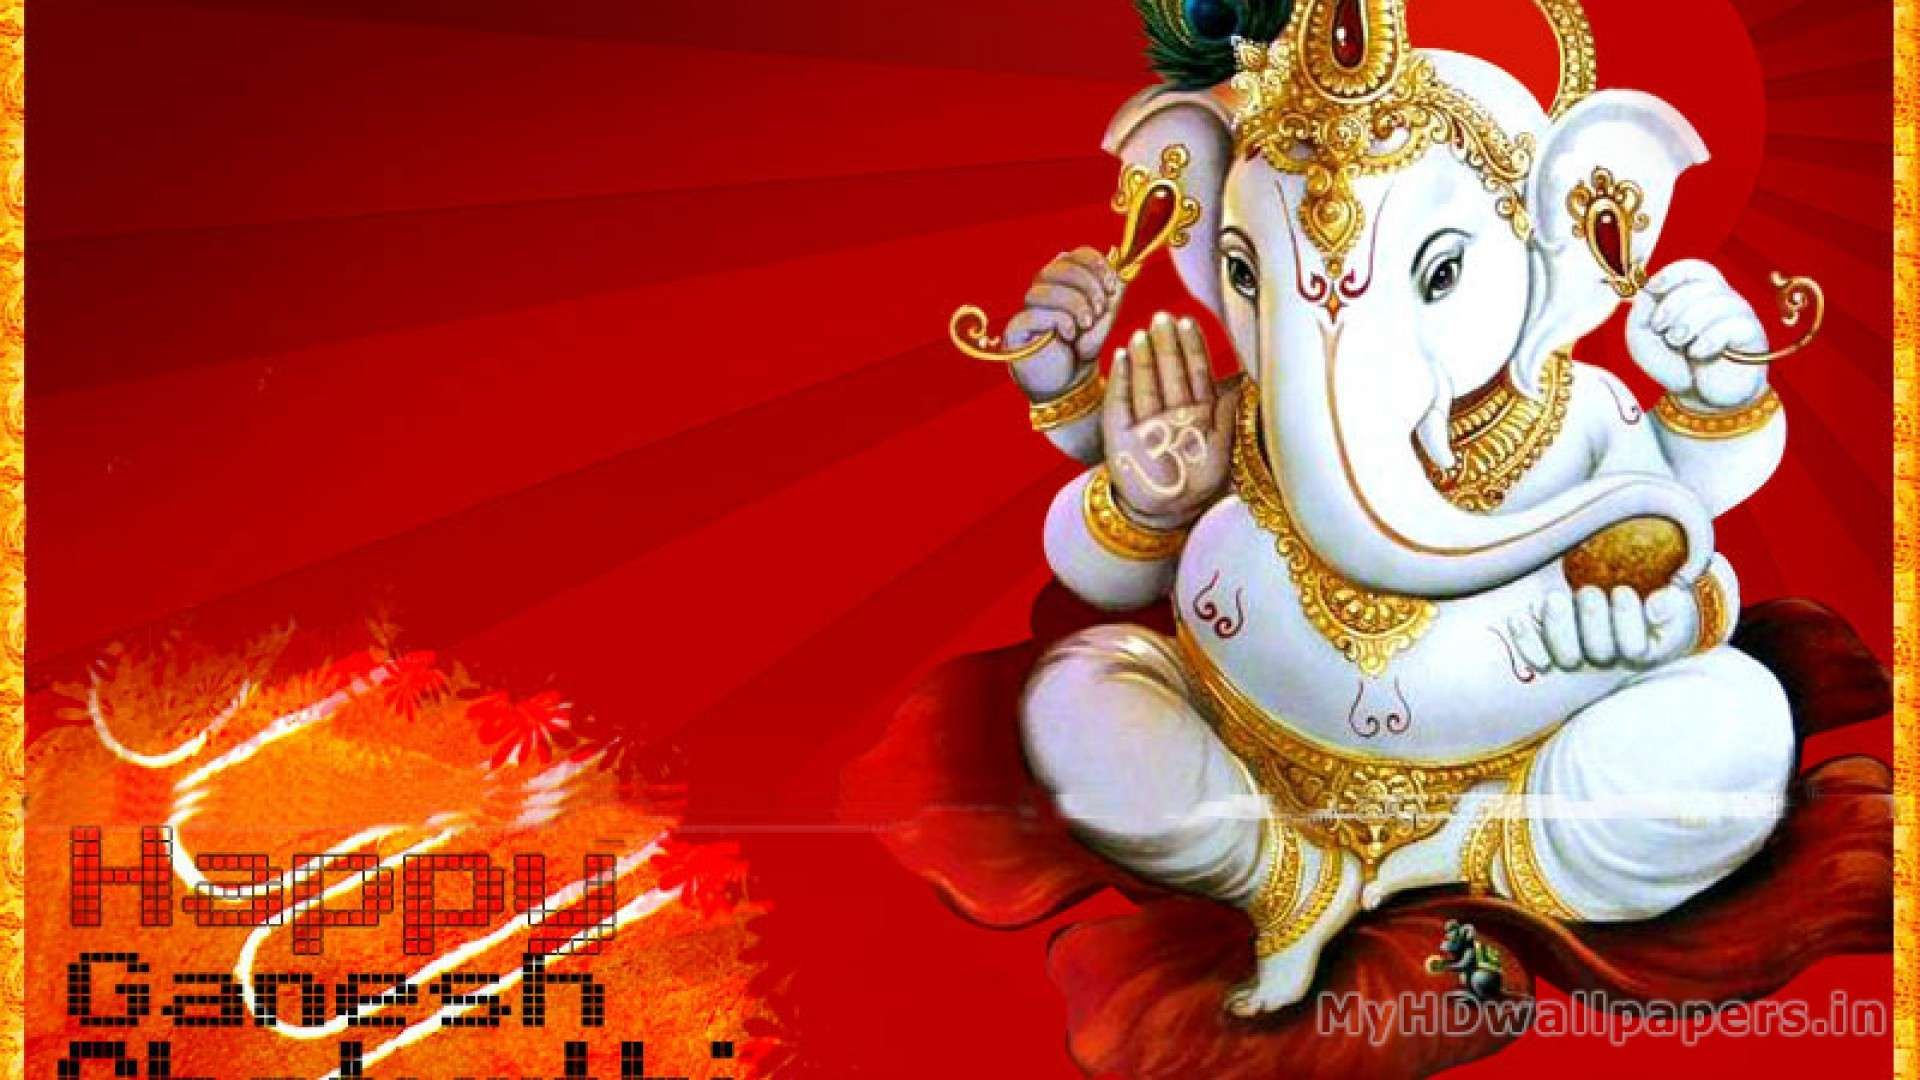 Ganesh Wallpaper Hd Quality For Pc Hd Wallpapers Ganesh Wallpaper Happy Ganesh Chaturthi Images Ganesh Chaturthi Images